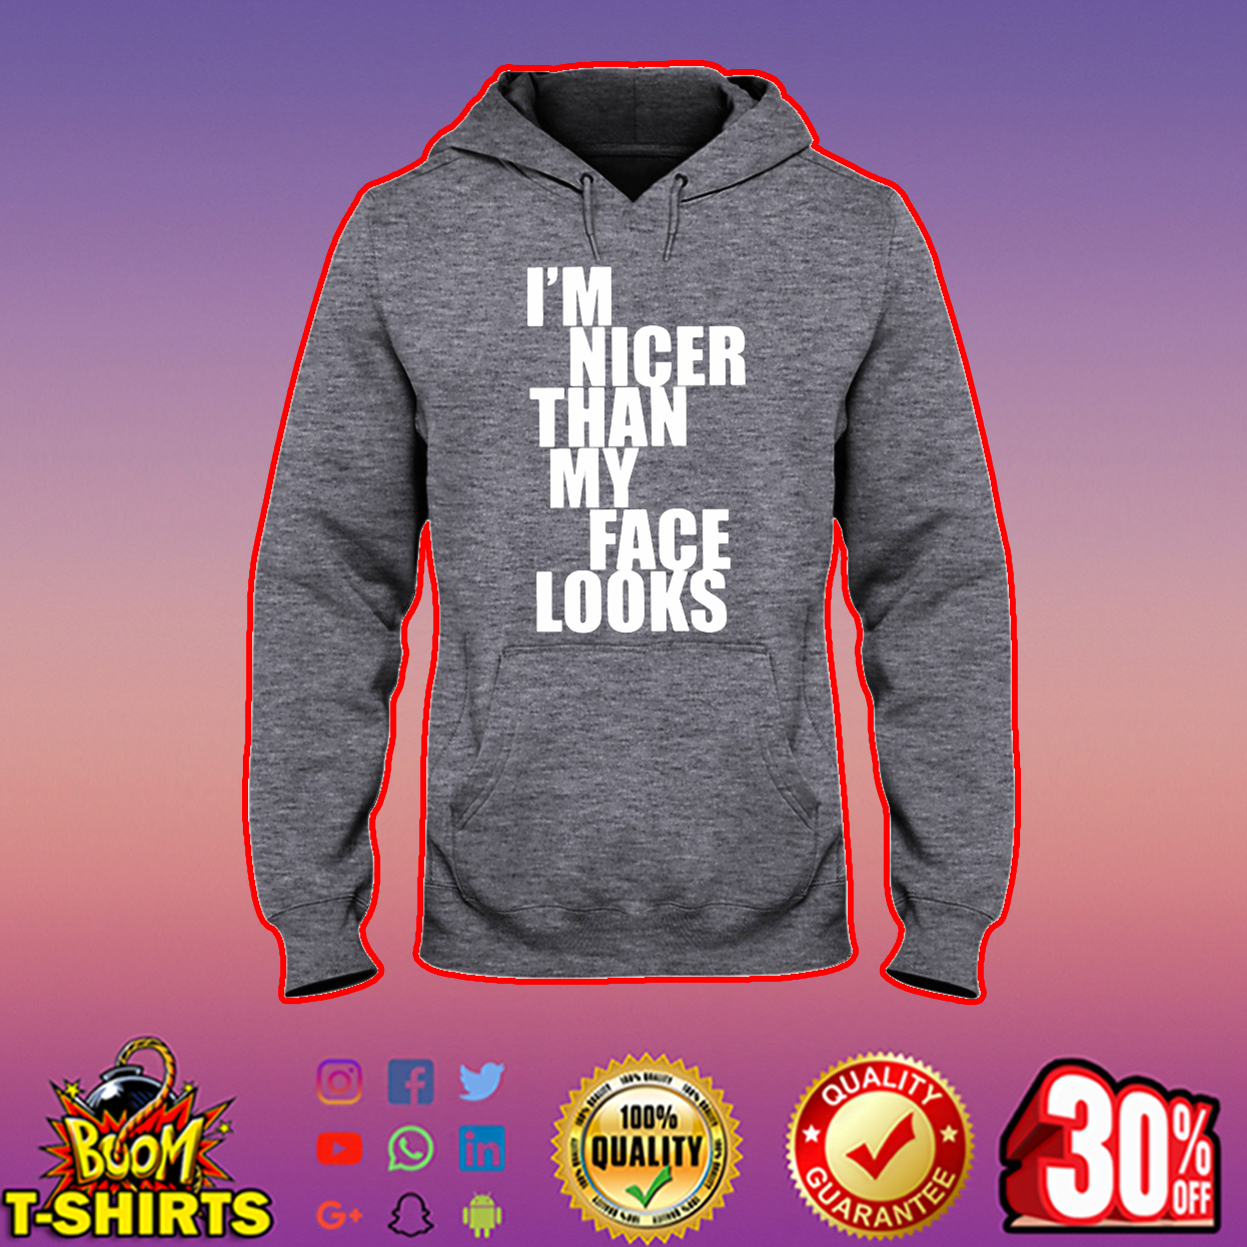 I'm the nicer than my face looks hooded sweatshirt